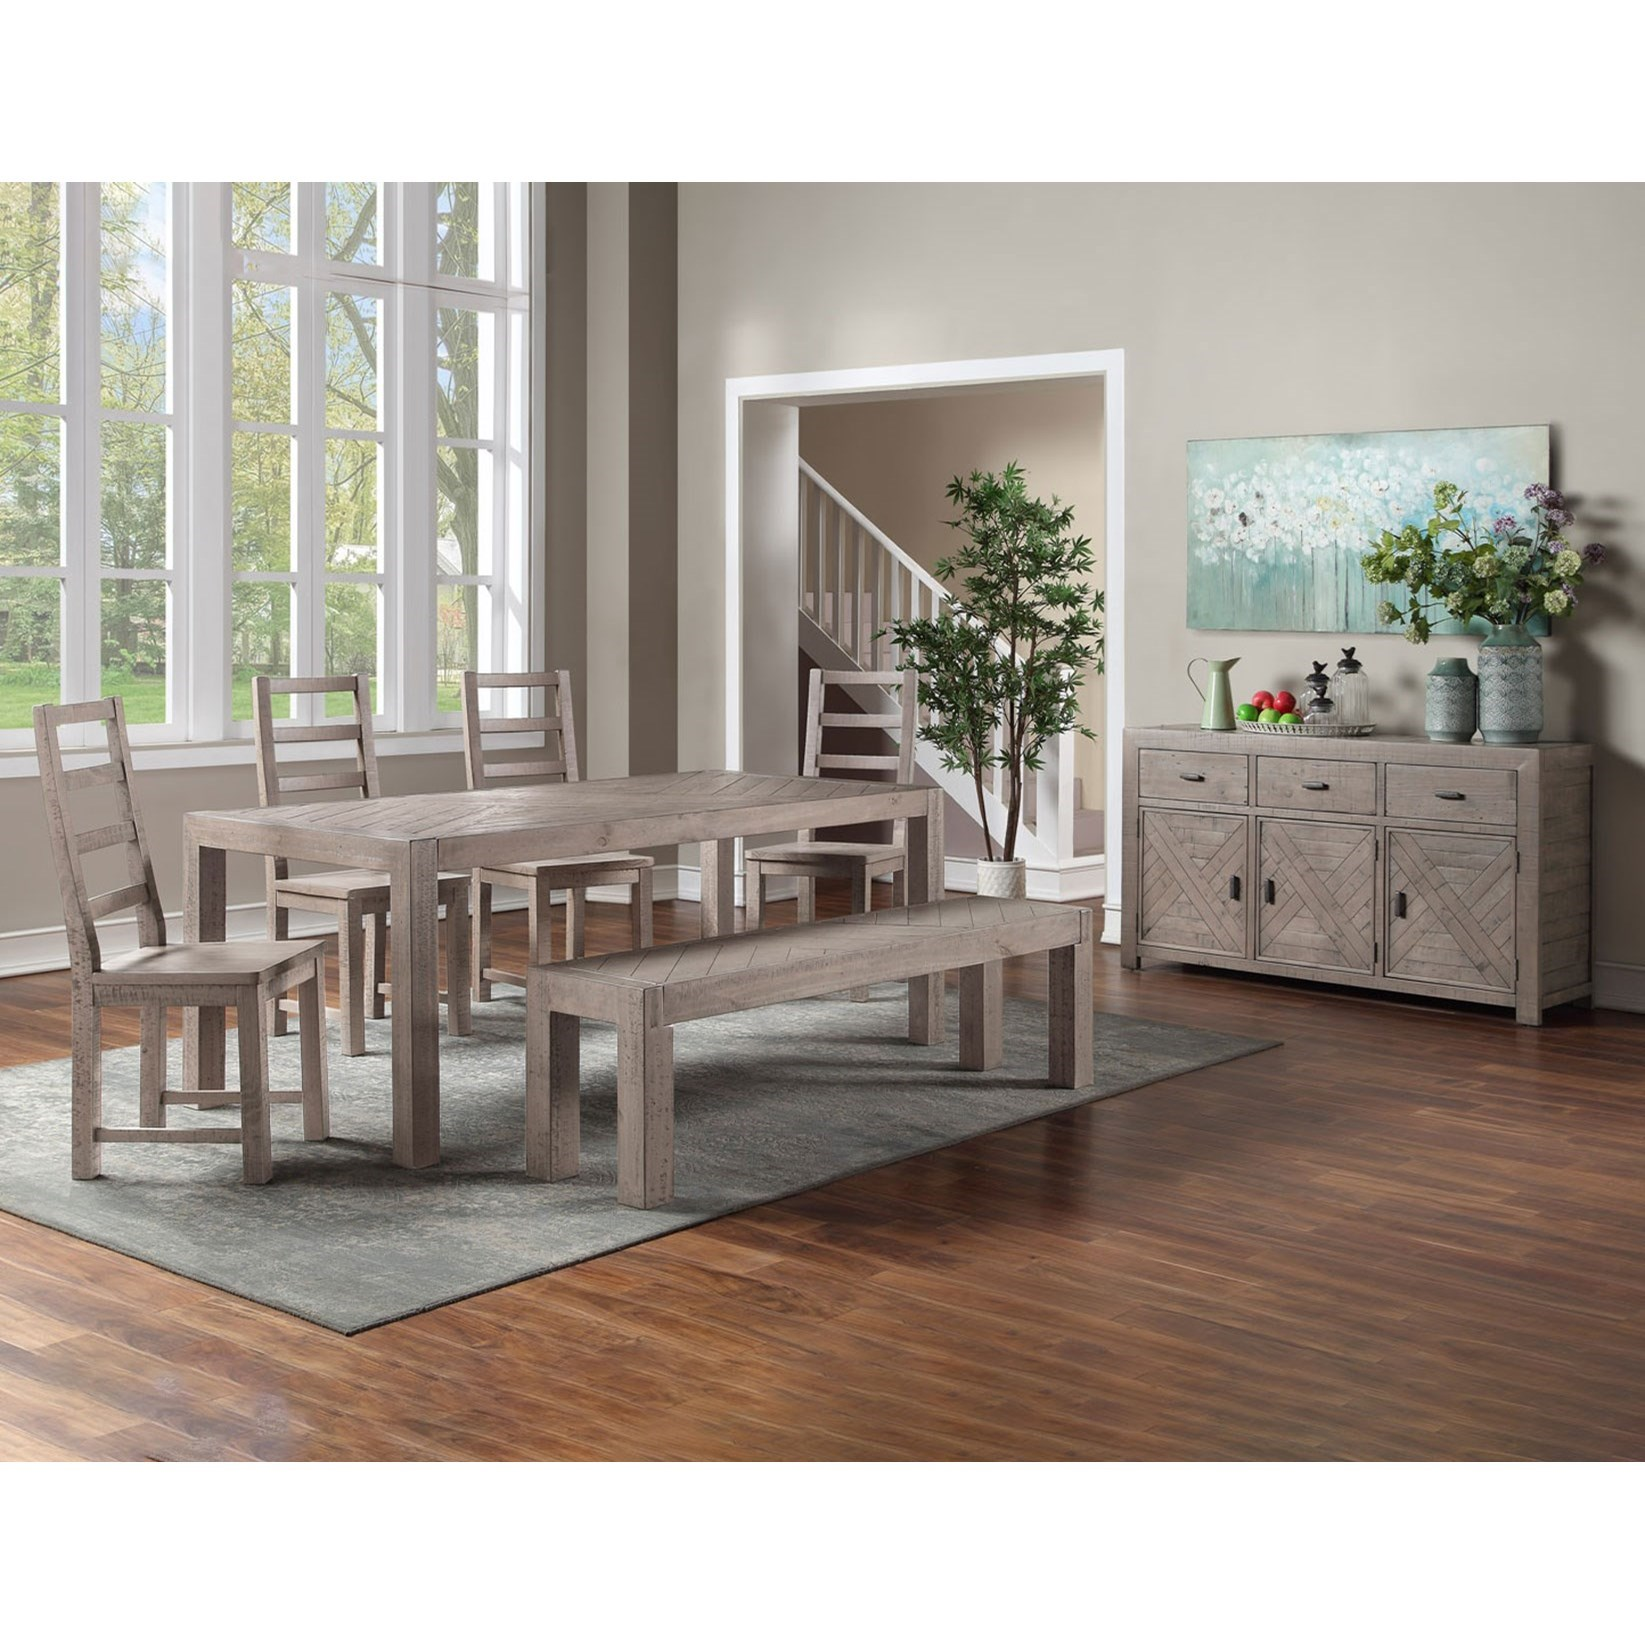 Auckland Dining Room Group by Star at EFO Furniture Outlet